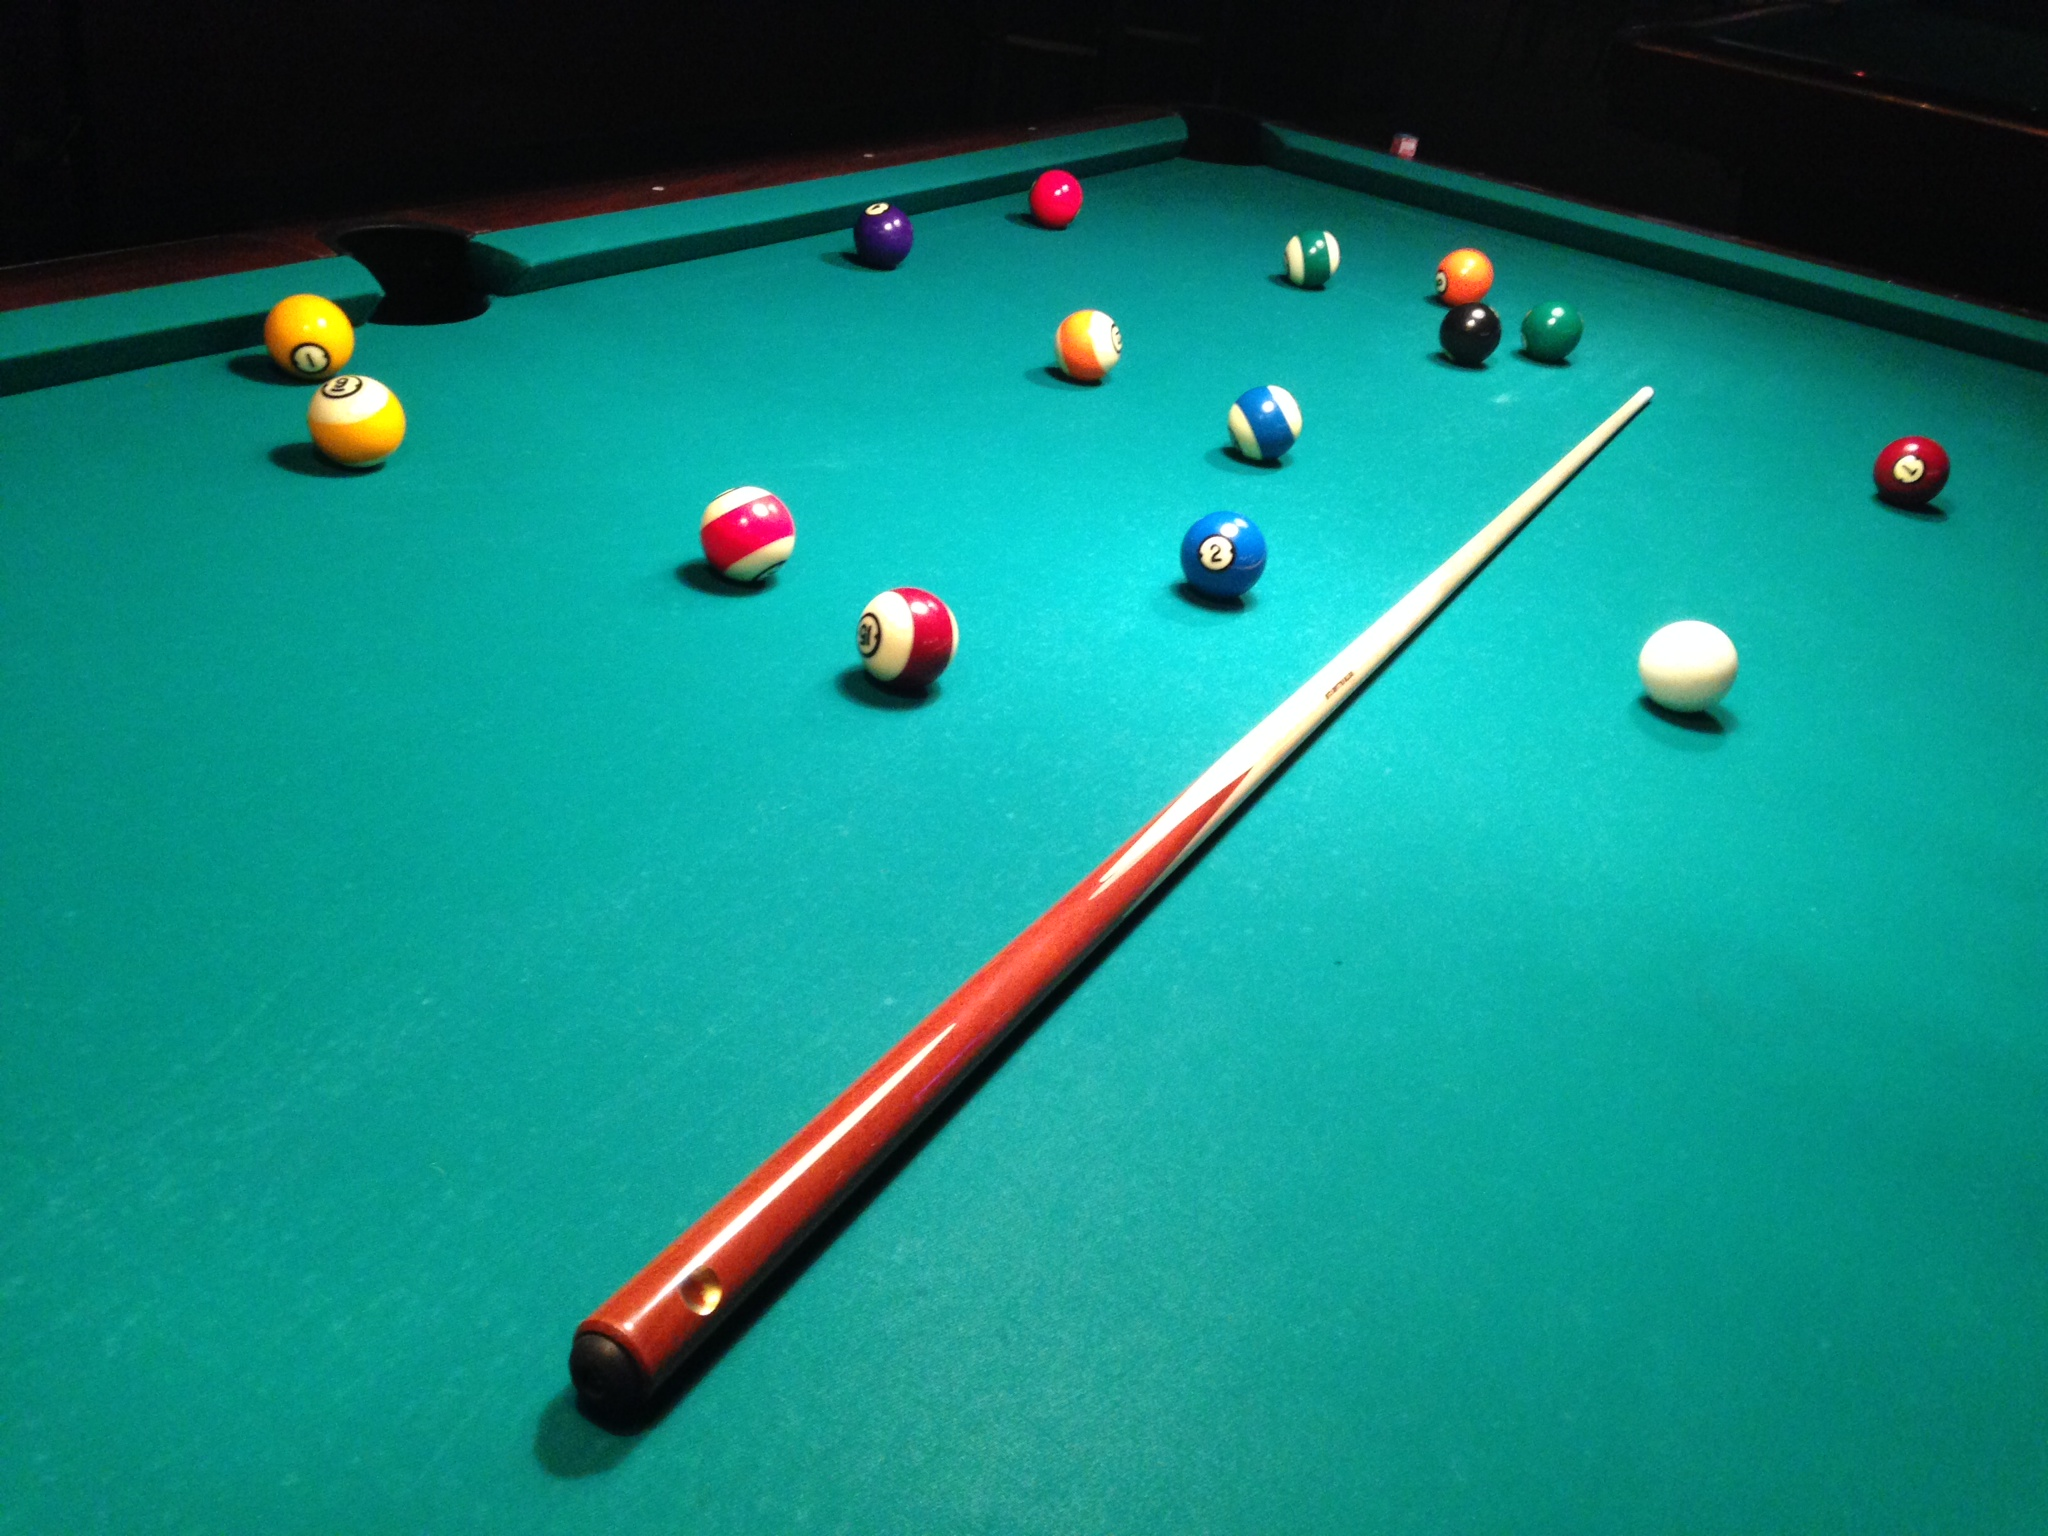 Pool Table Size Chart: Billiards table 2.JPG - Wikimedia Commons,Chart